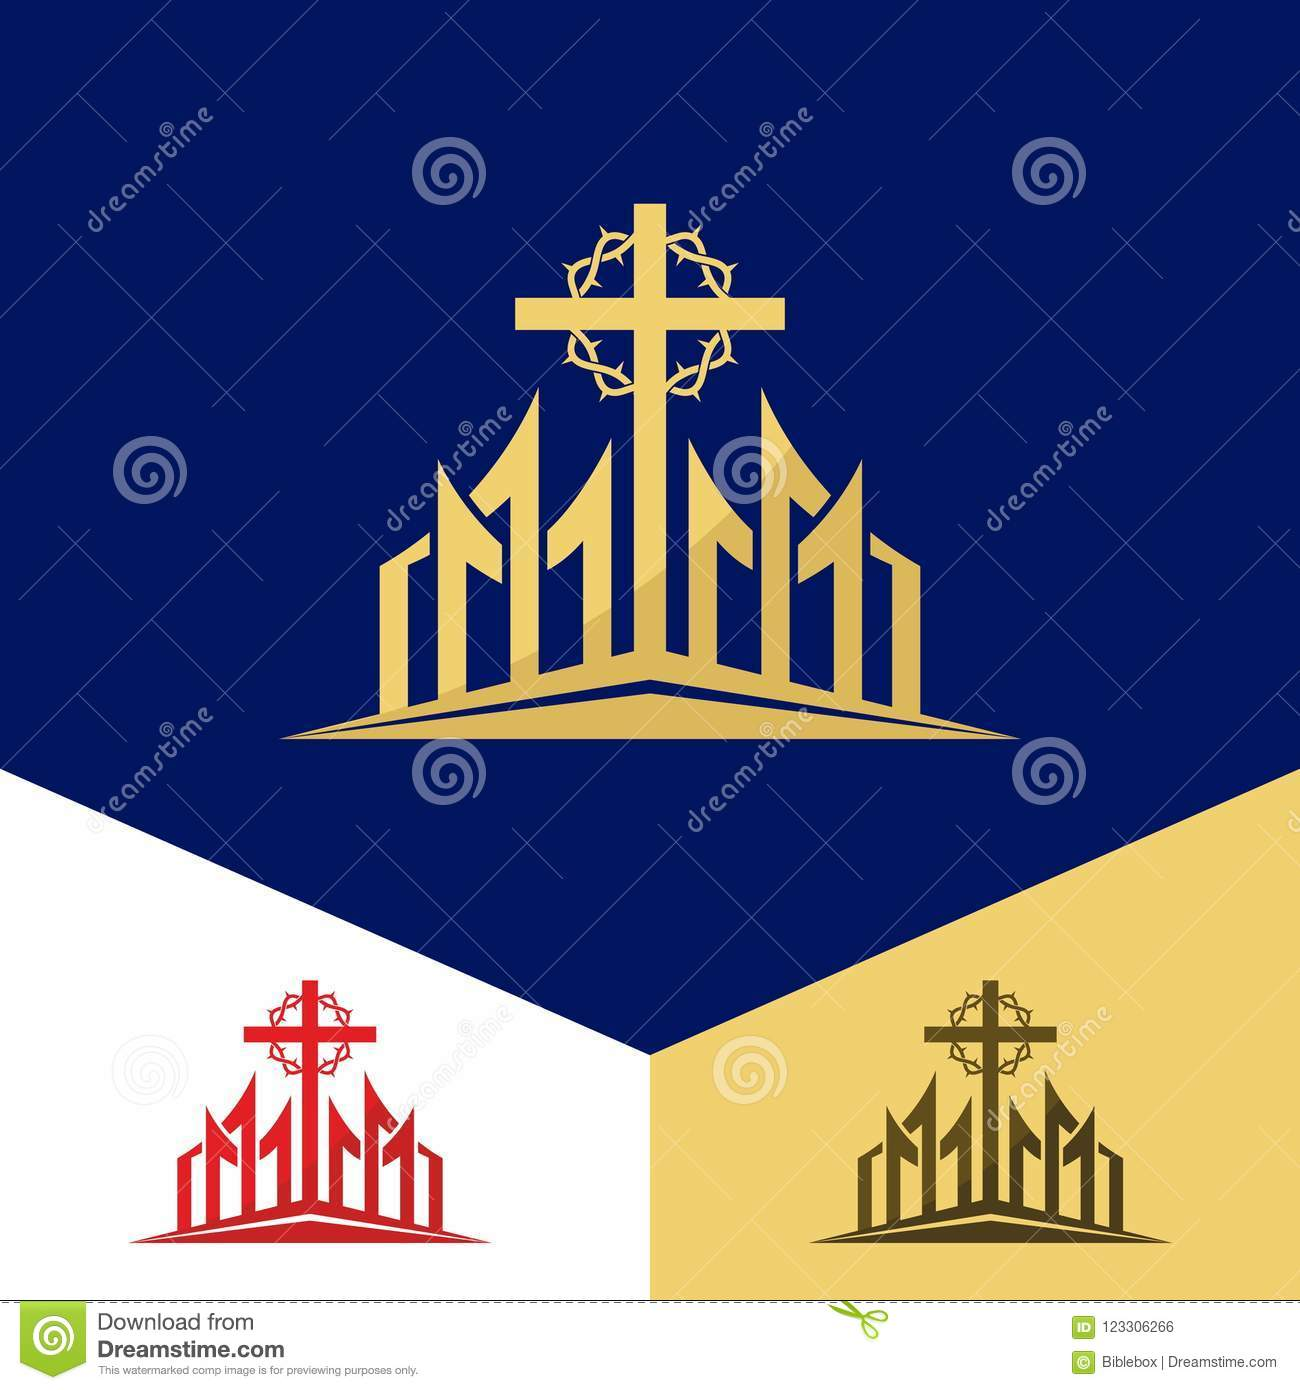 Church Logo Christian Symbols The Cross Of Jesus And The Crown Of